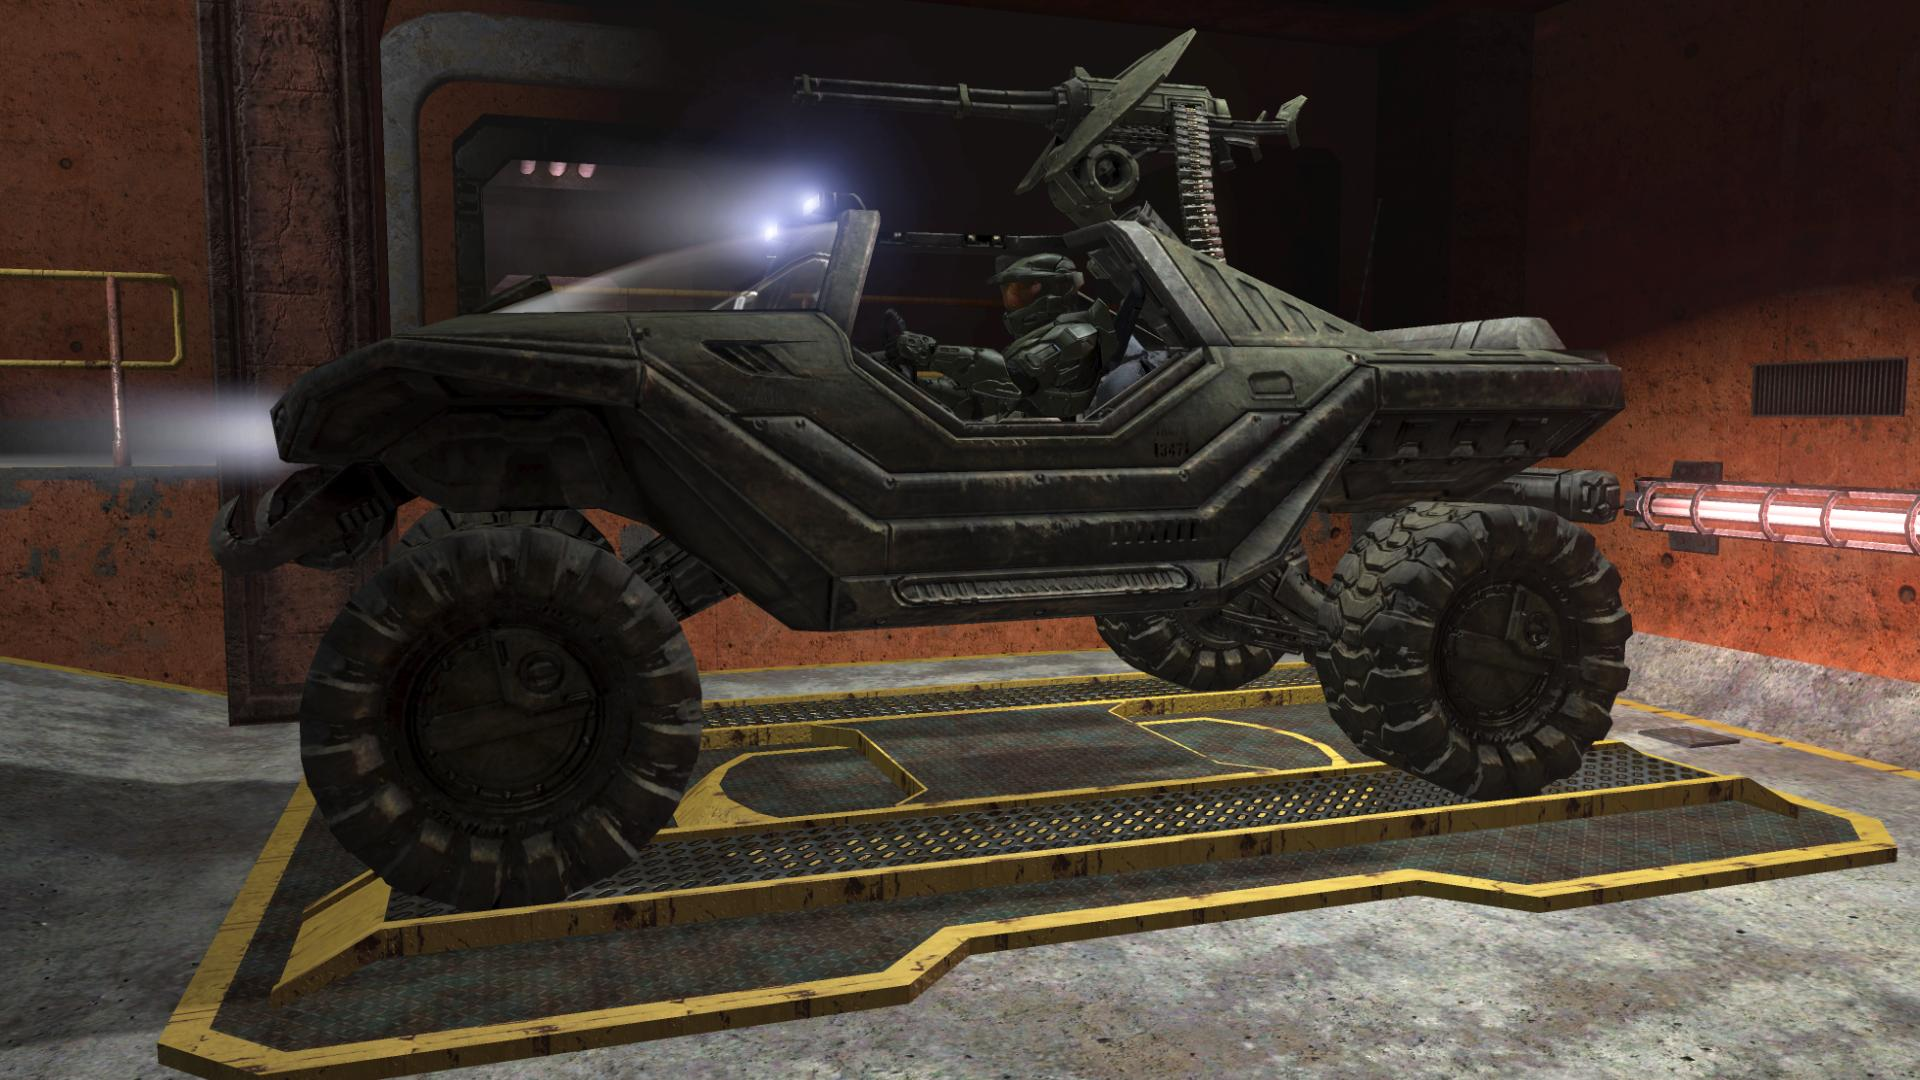 1521494478 6c50ae3a3c o Halo 3: Warthog Ready for Action!